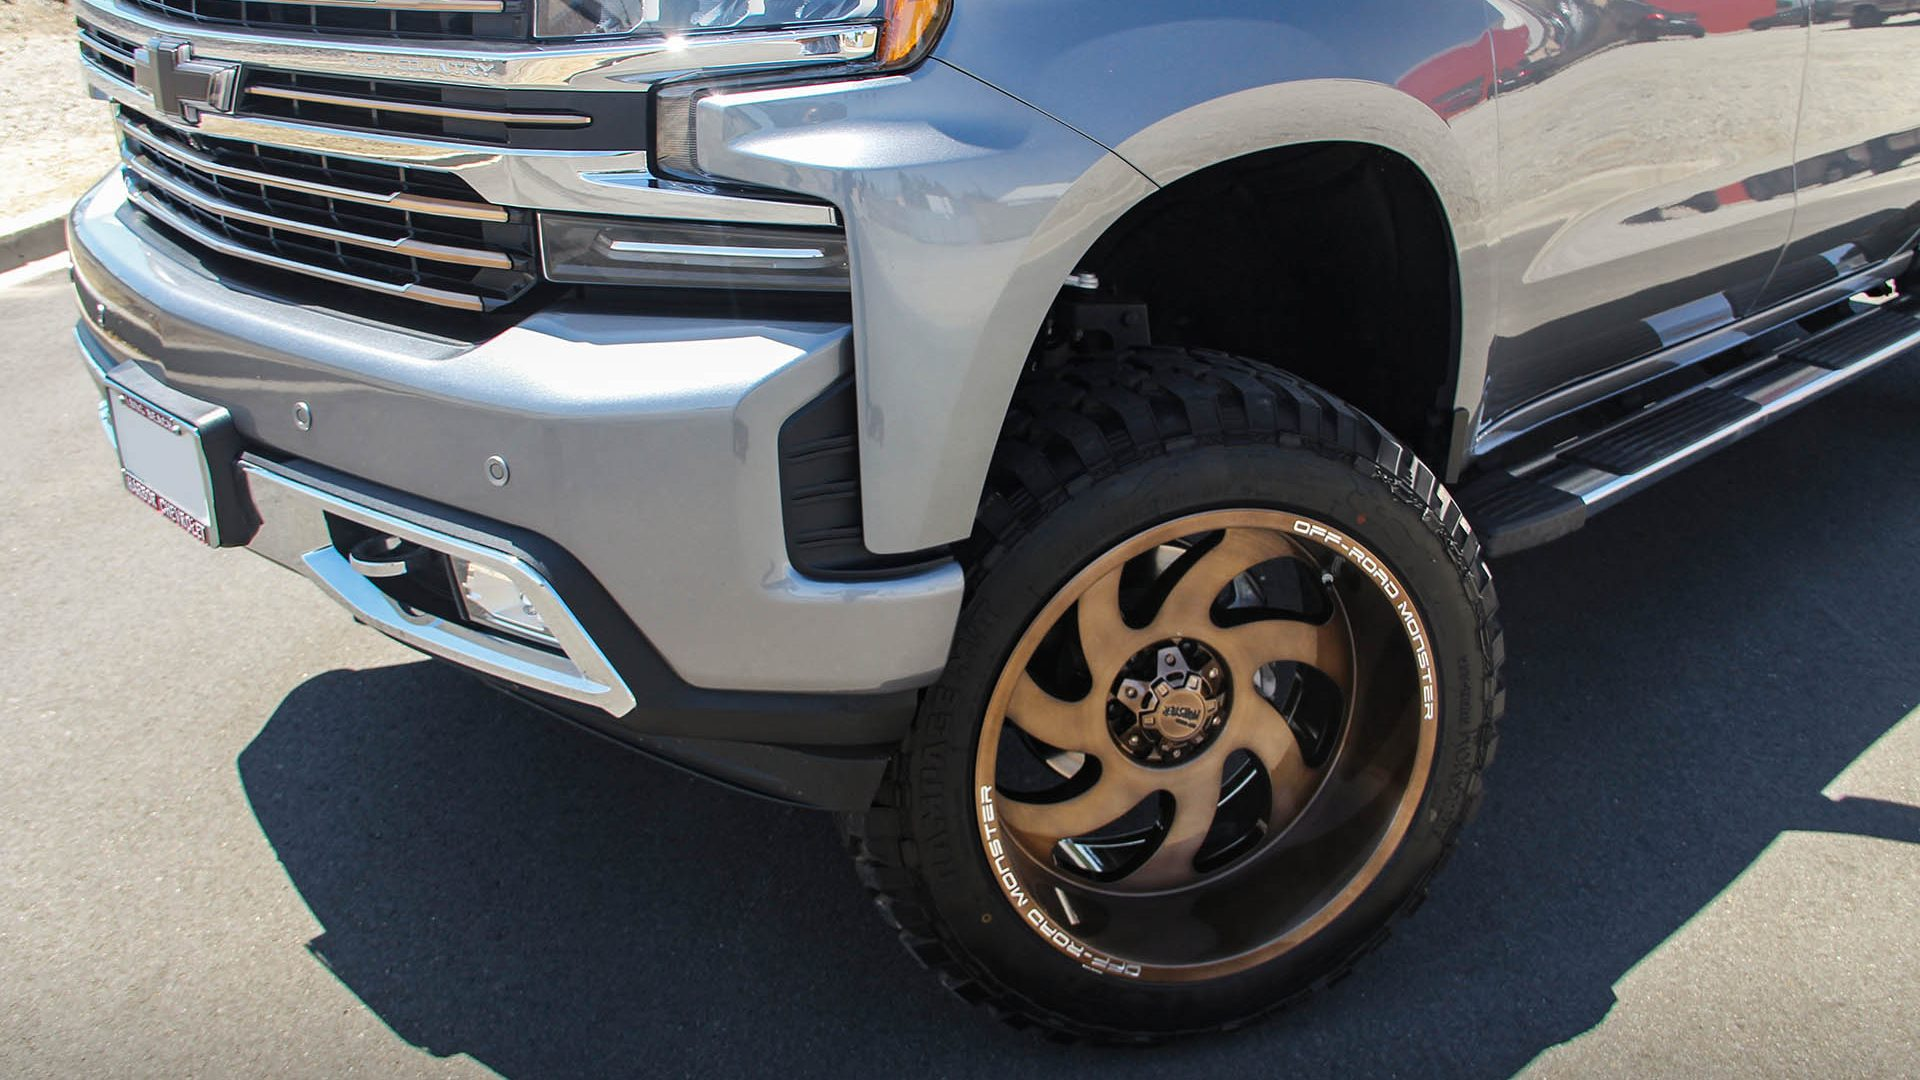 Offroad Monster M07 Wheels on a Chevrolet Silverado High Country